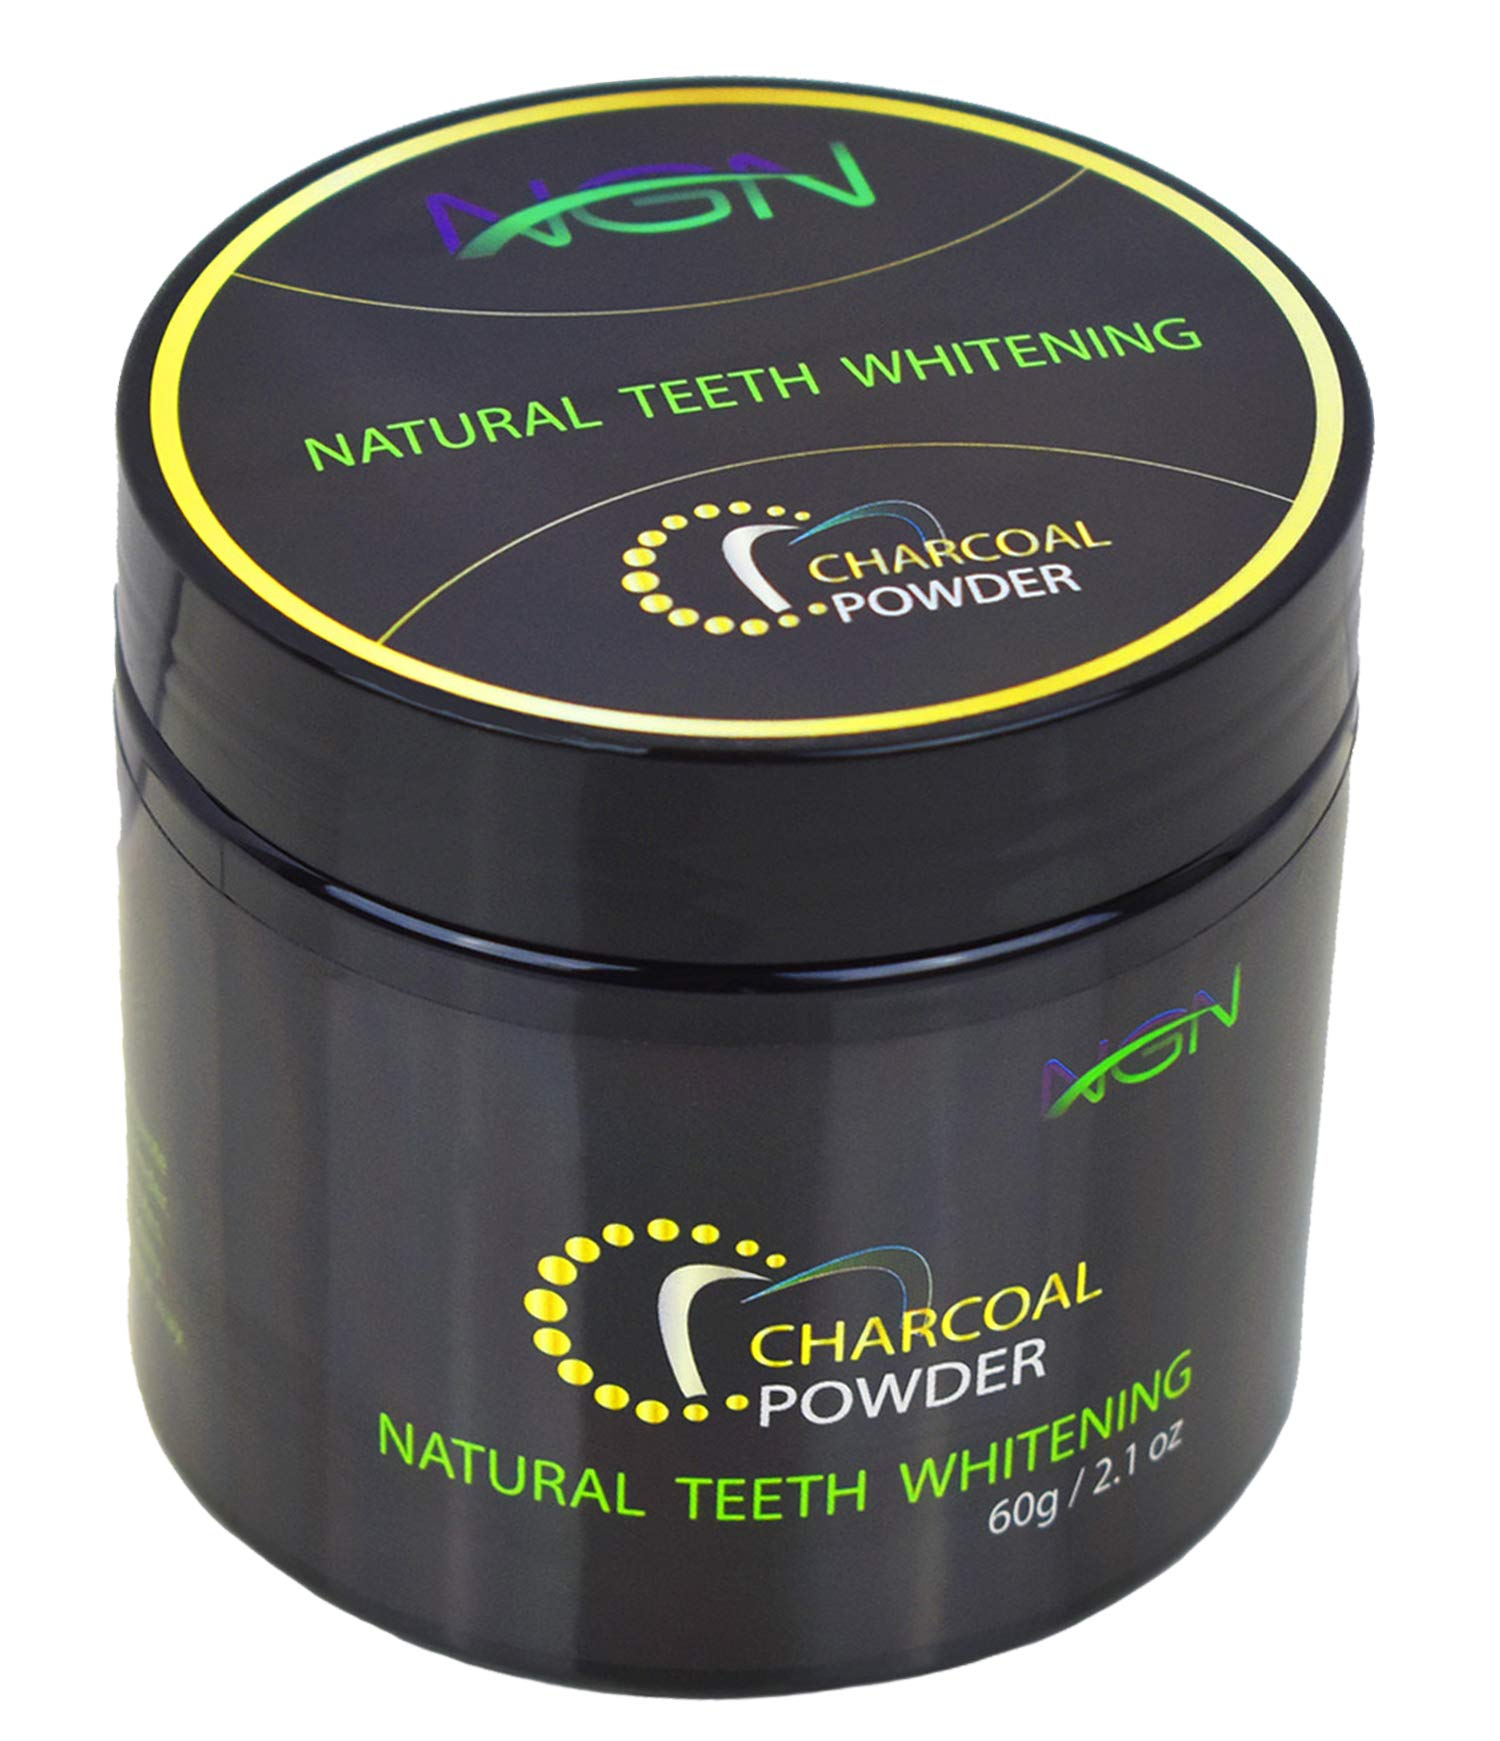 Teeth Whitening Charcoal Powder Natural (60g) by NGN - 100% Organic, Activated Coconut Charcoal Teeth Whitener with Mint Flavor - Removes Tea and Coffee Stains - Cheap Alternative to Strips & Gel